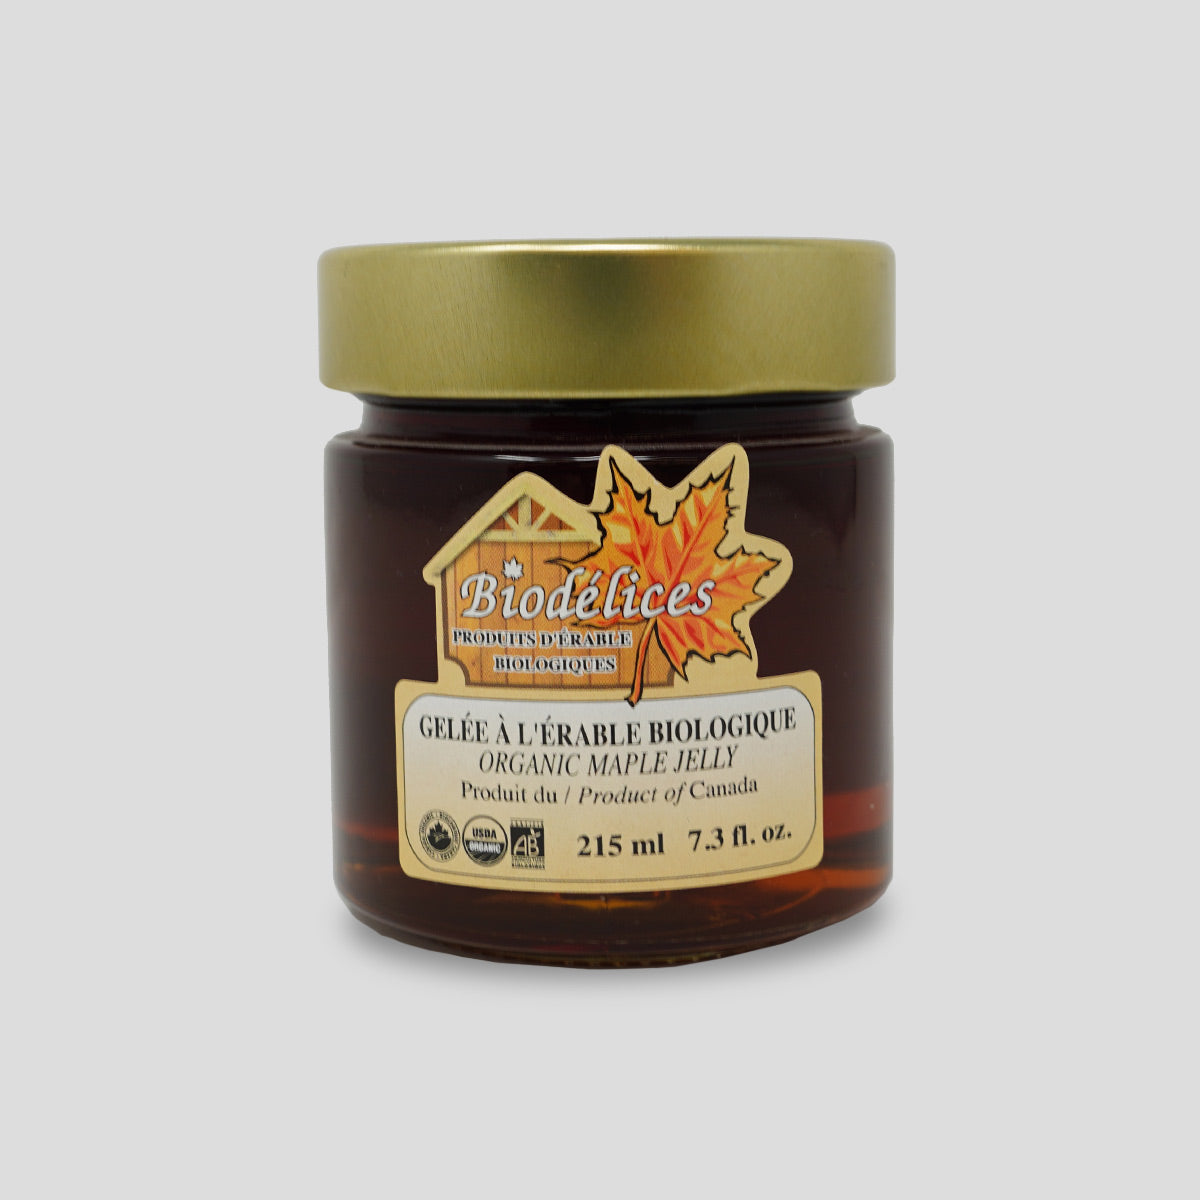 Organic Maple Jelly